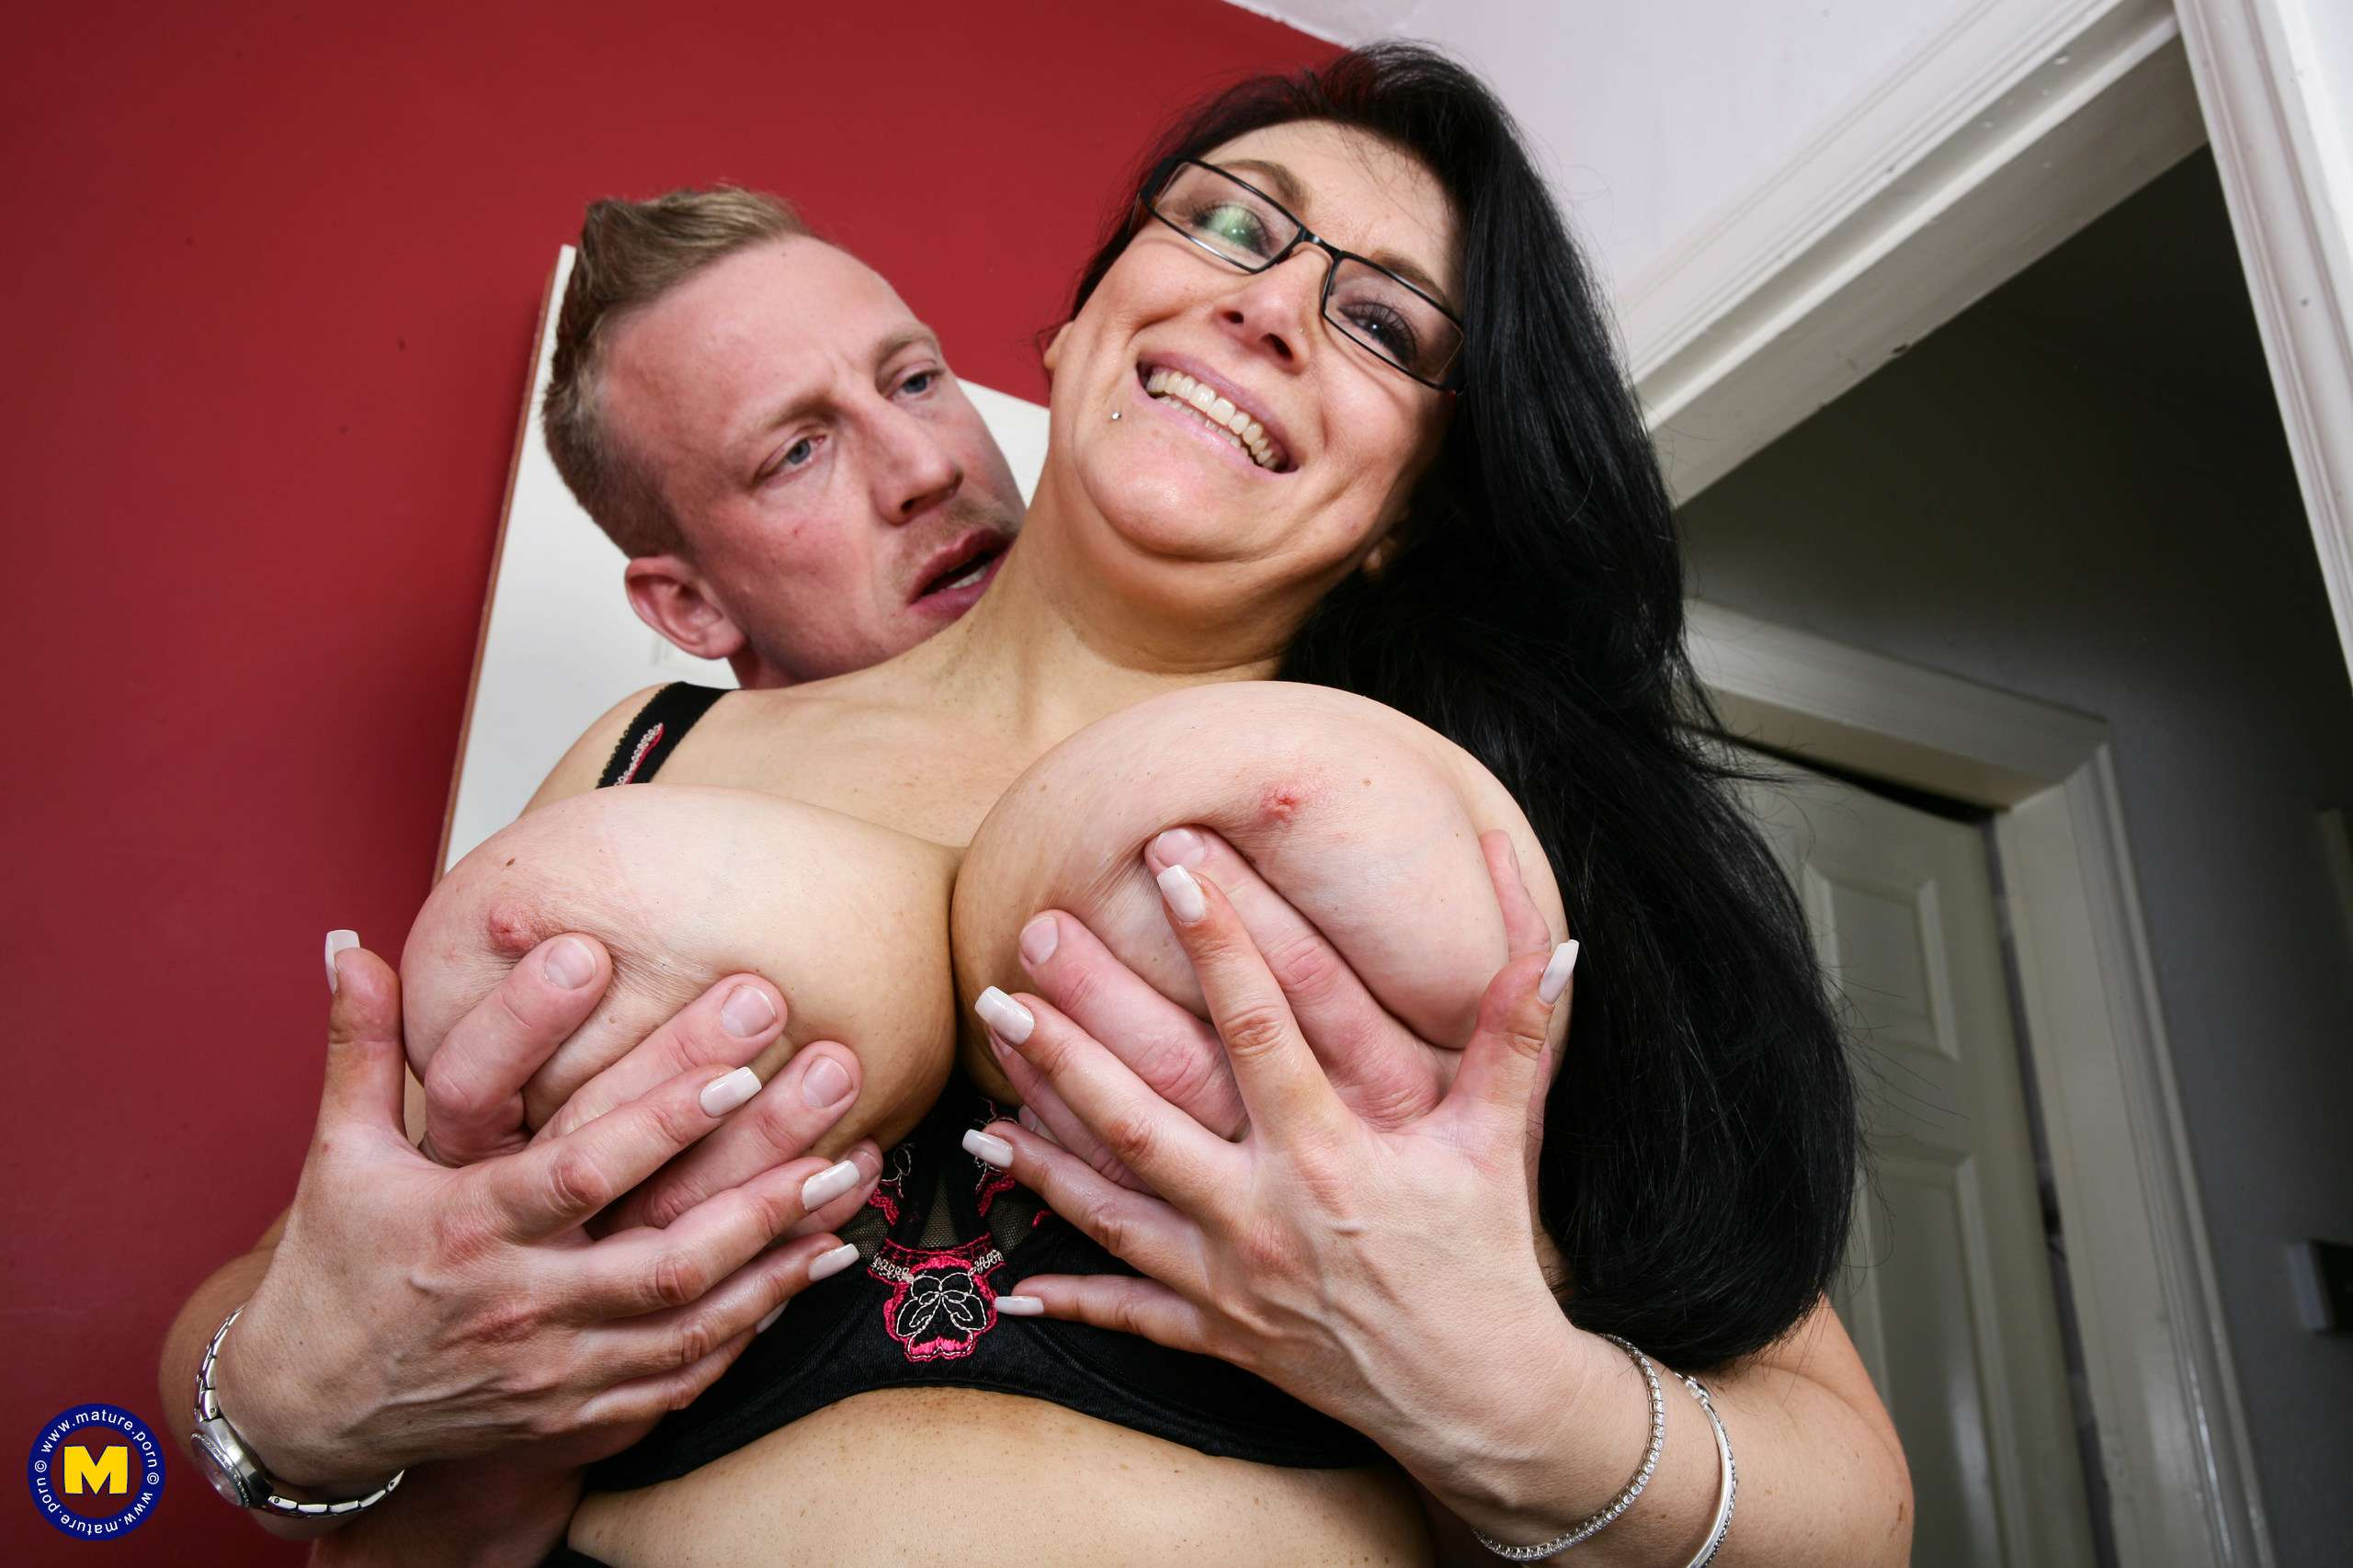 Big breasted British housewife fooling around with the guy next door